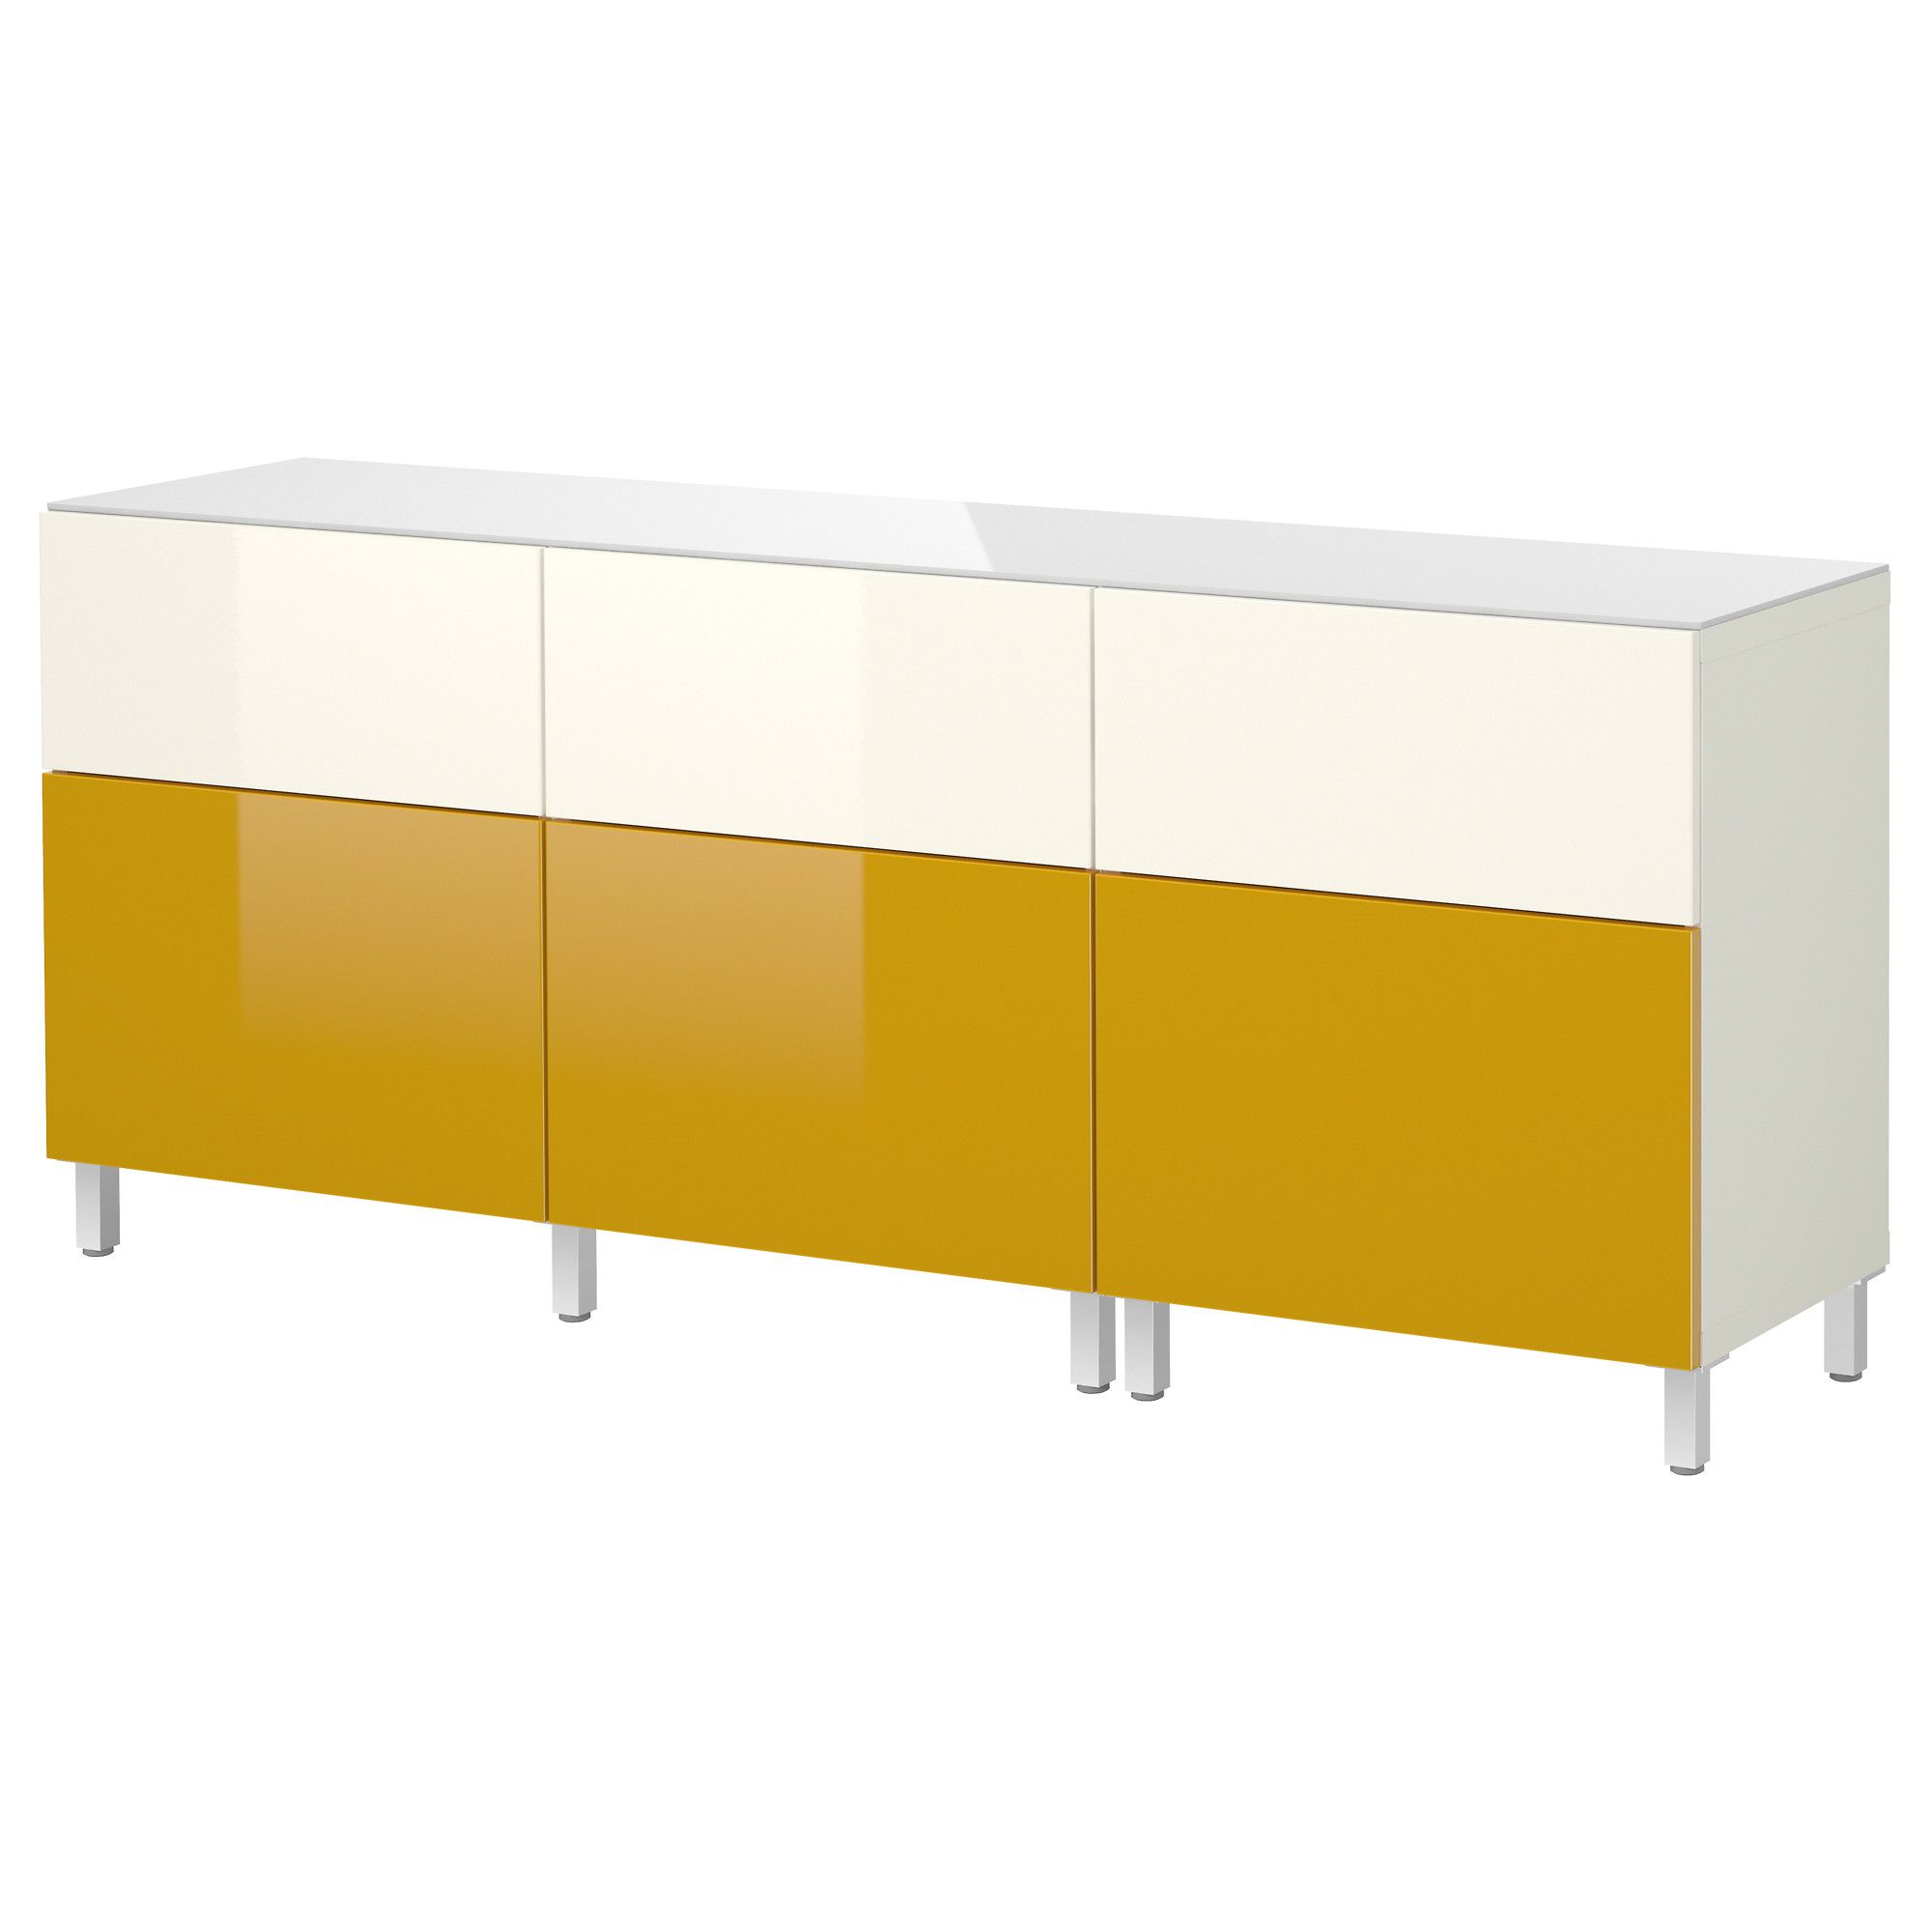 best combi rgt portes tiroirs blanc tofta brillant jaune ikea salon jaune pinterest. Black Bedroom Furniture Sets. Home Design Ideas